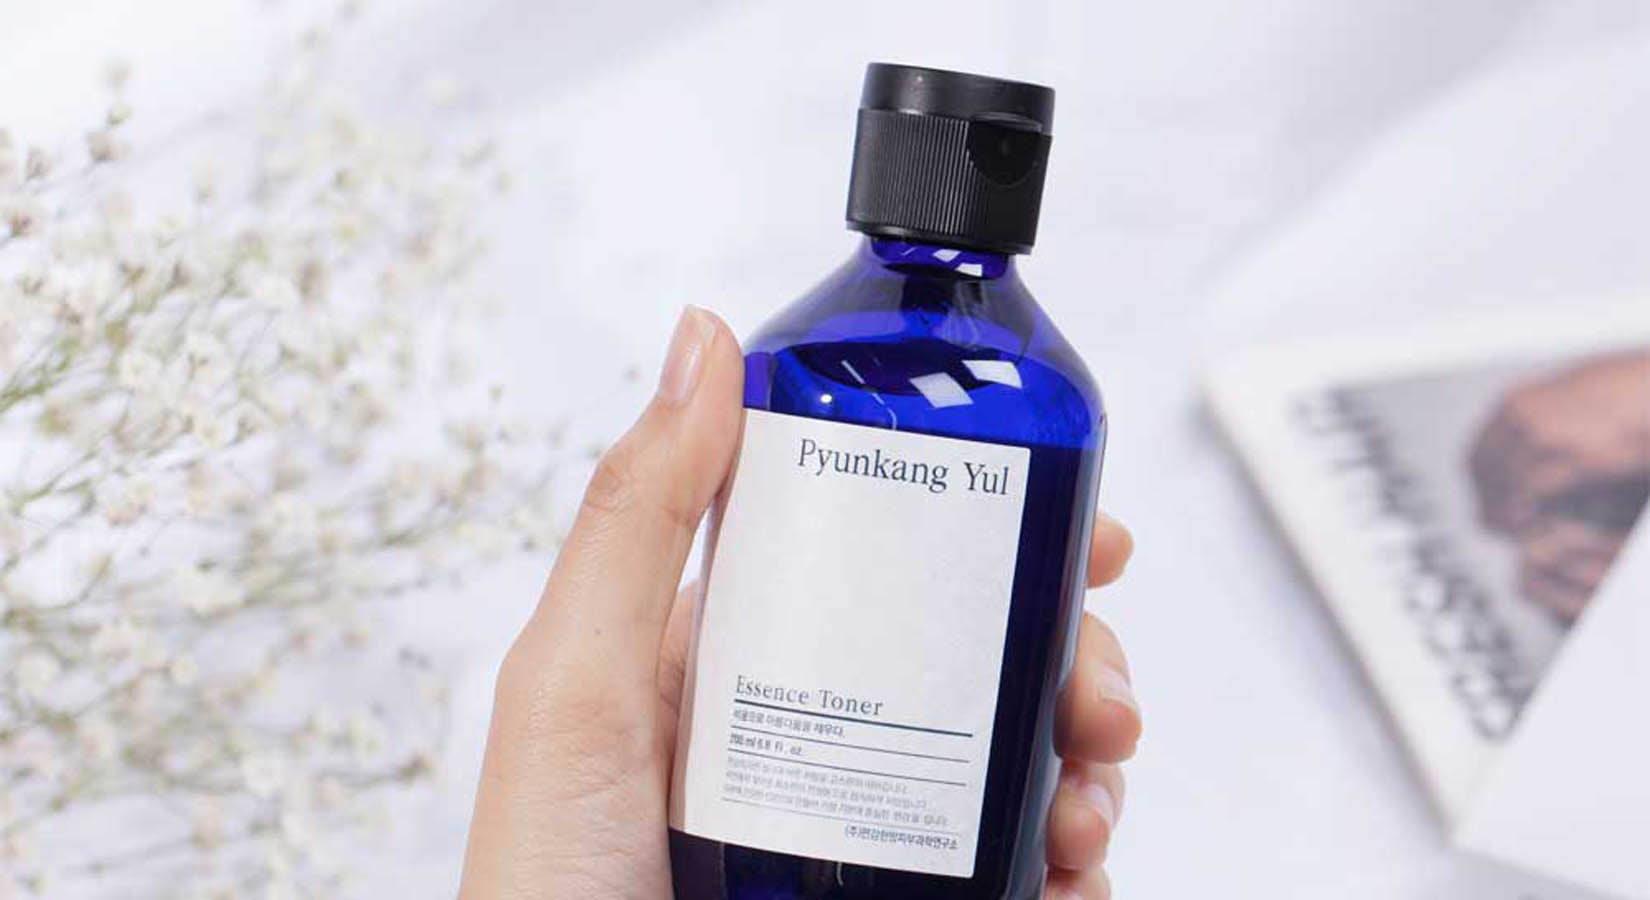 Korean Skincare is all about toner. A toner will restore your natural pH after cleansing while moisturising your skin.